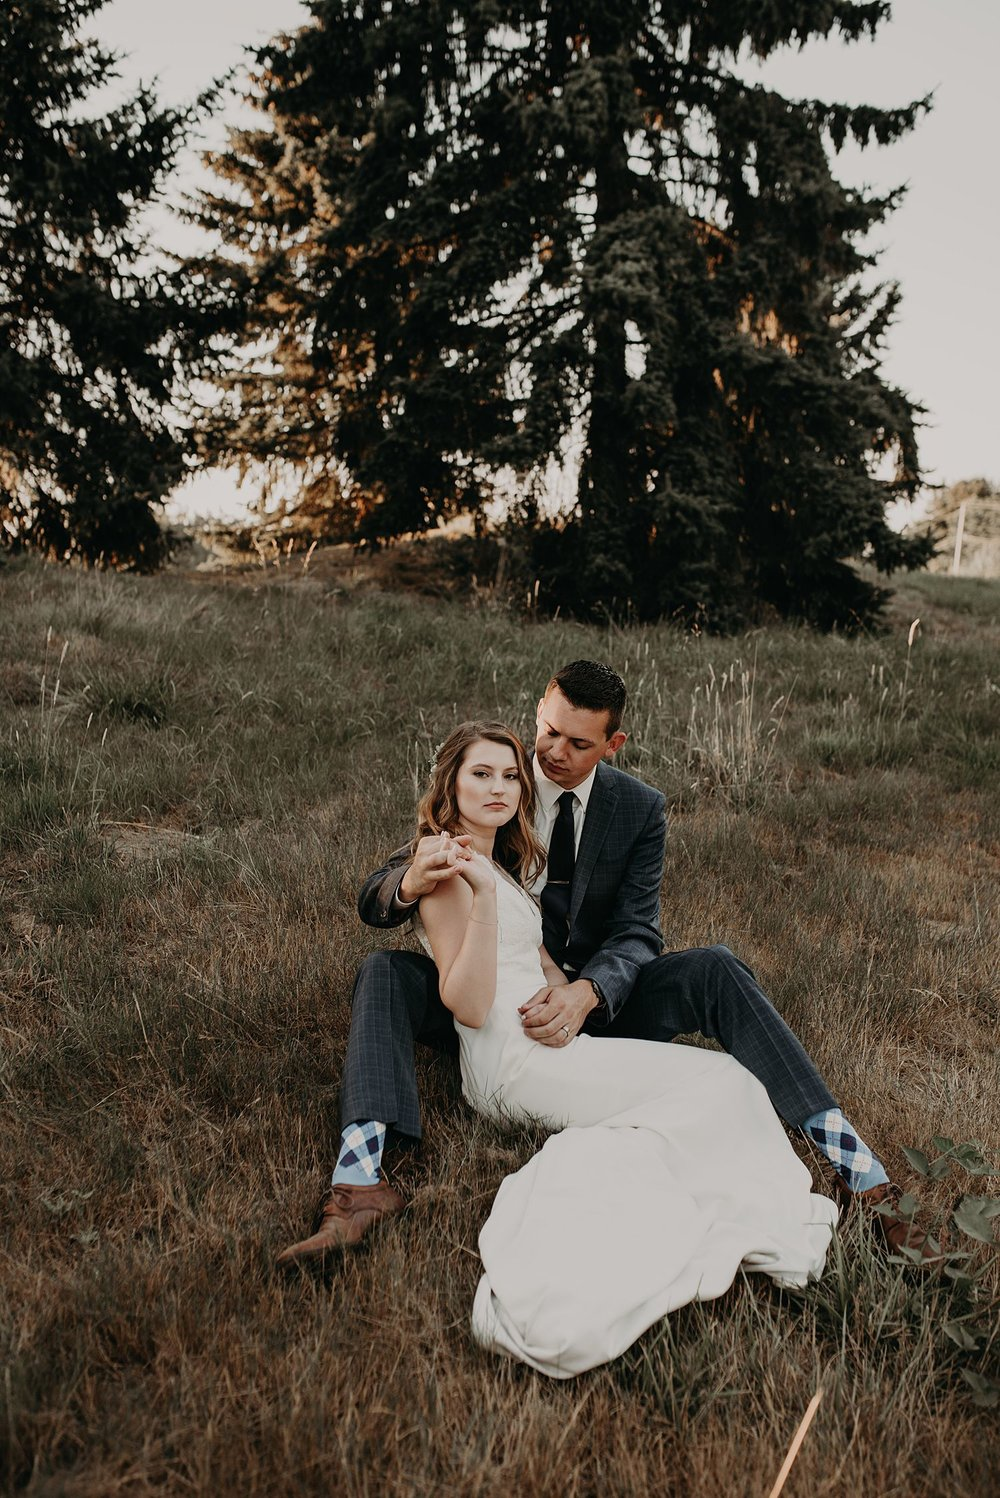 Kayla_Josh_Oregon_Wedding_July29_2018_0214.jpg